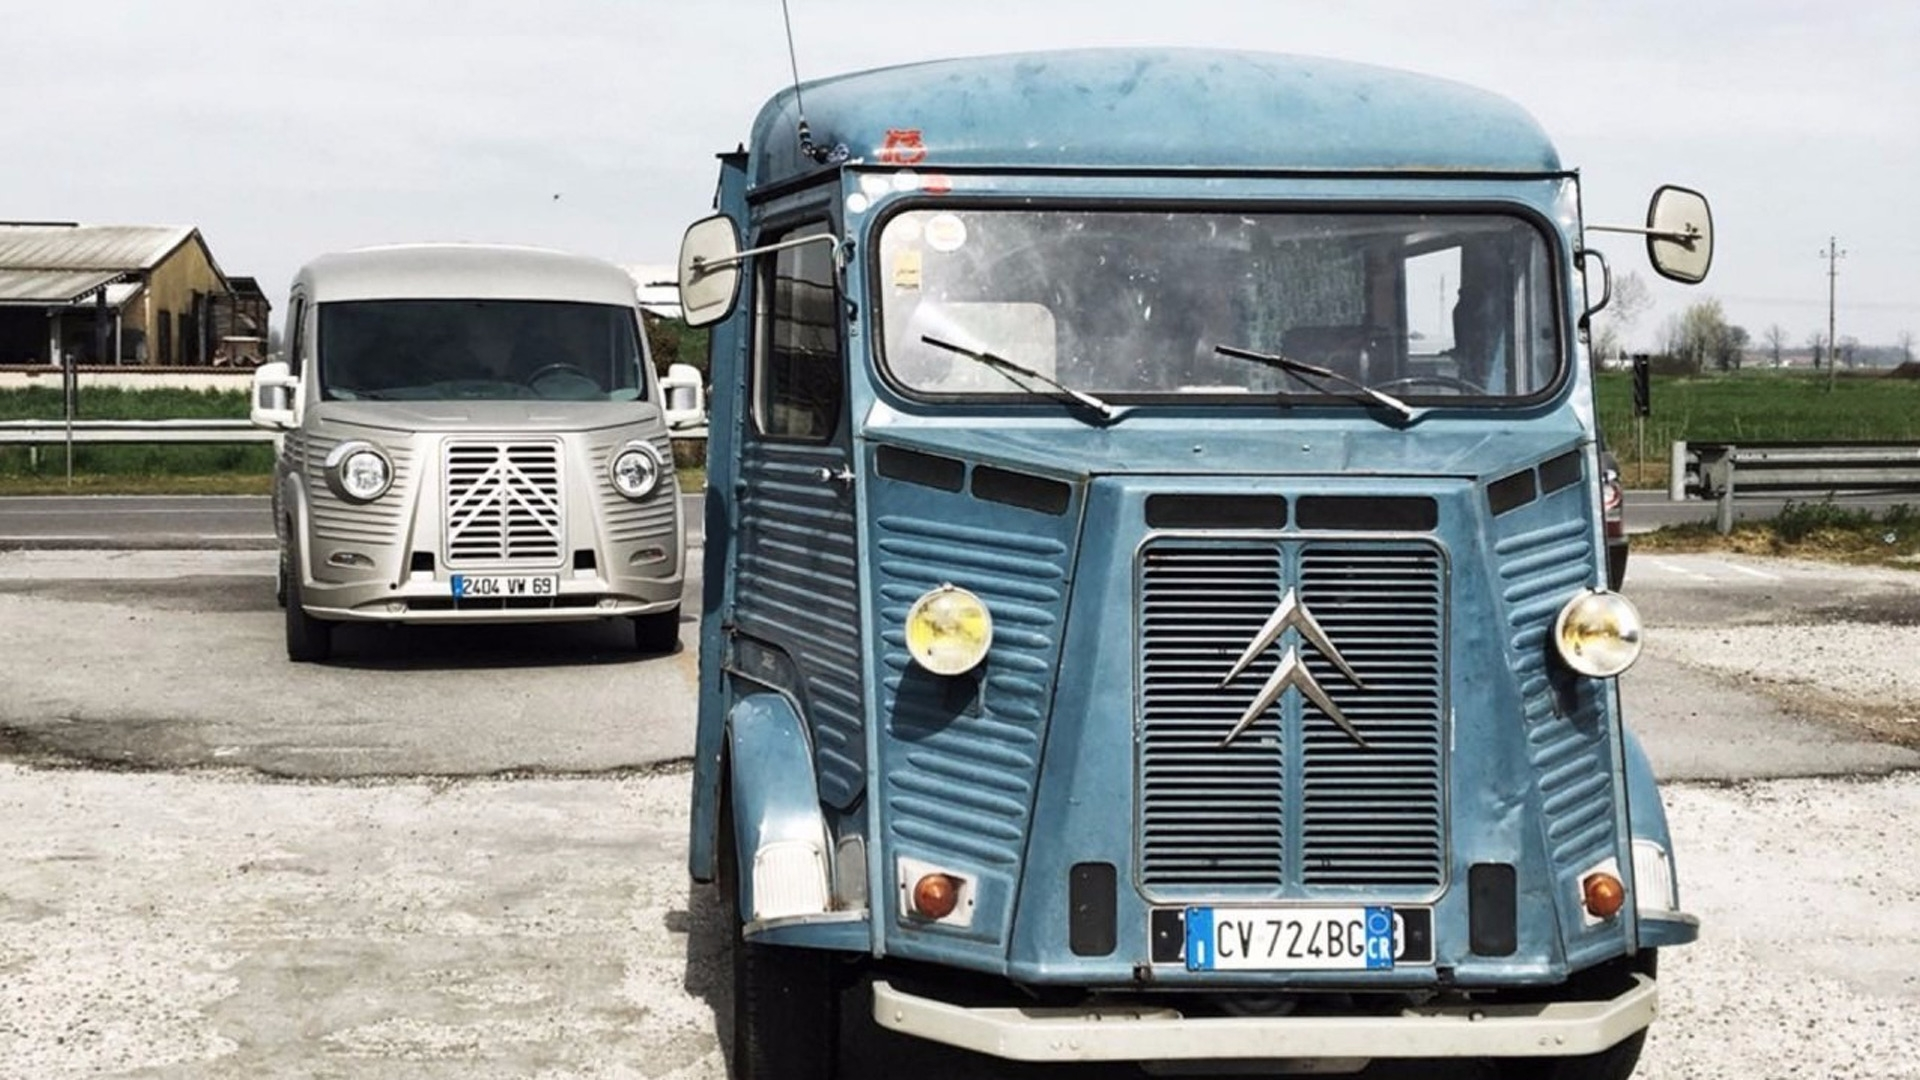 [KIT CARROSSERIE] Type H 70th Anniversary van S0-citroen-transformez-votre-jumper-en-type-h-neo-retro-400280